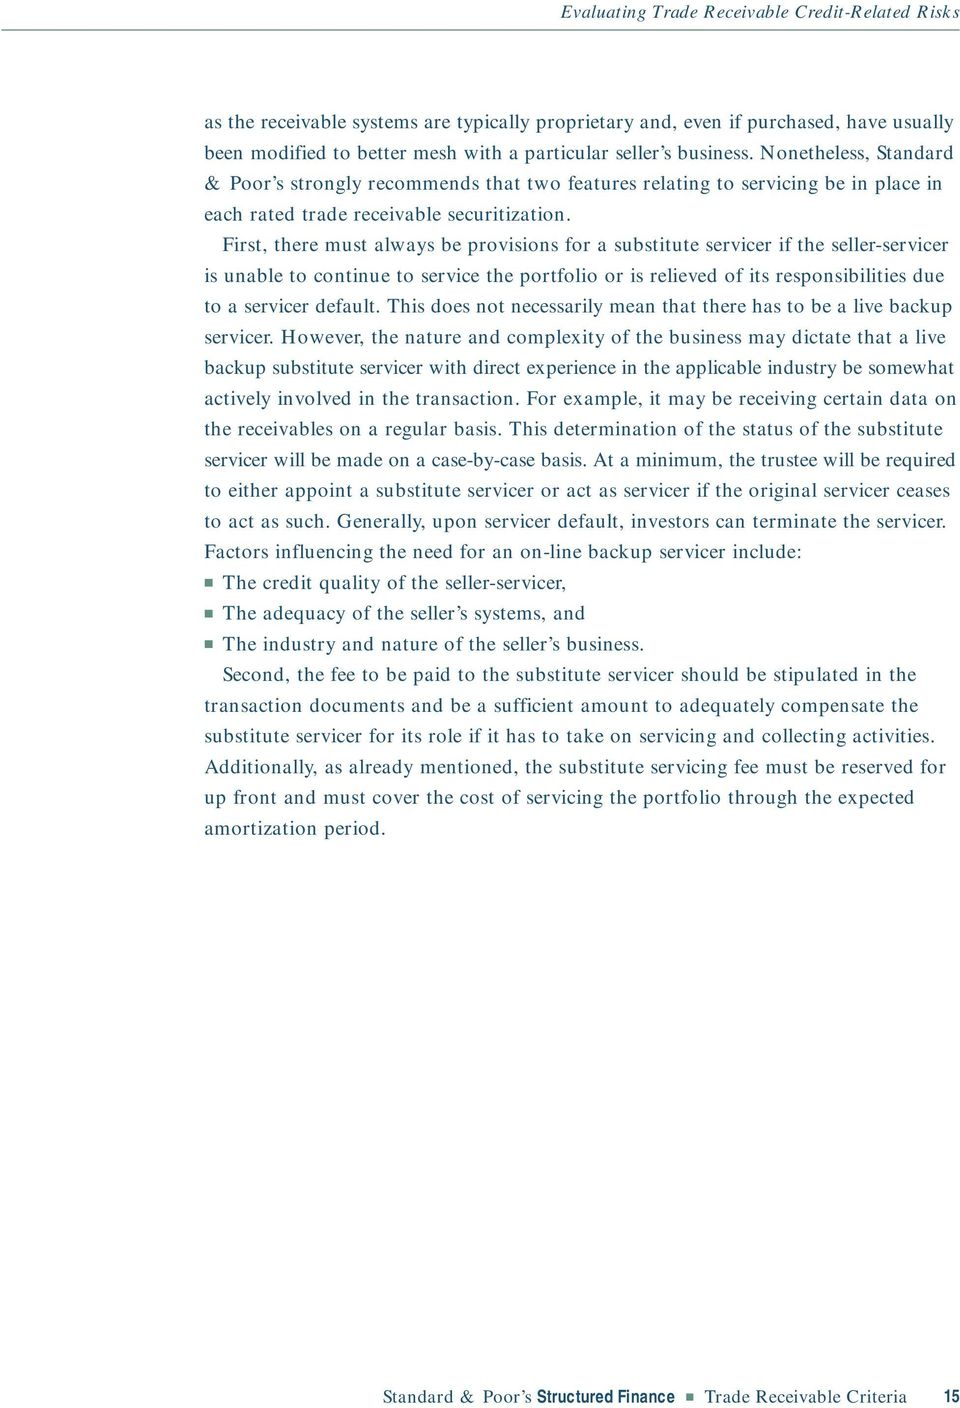 First, there must always be provisions for a substitute servicer if the seller-servicer is unable to continue to service the portfolio or is relieved of its responsibilities due to a servicer default.